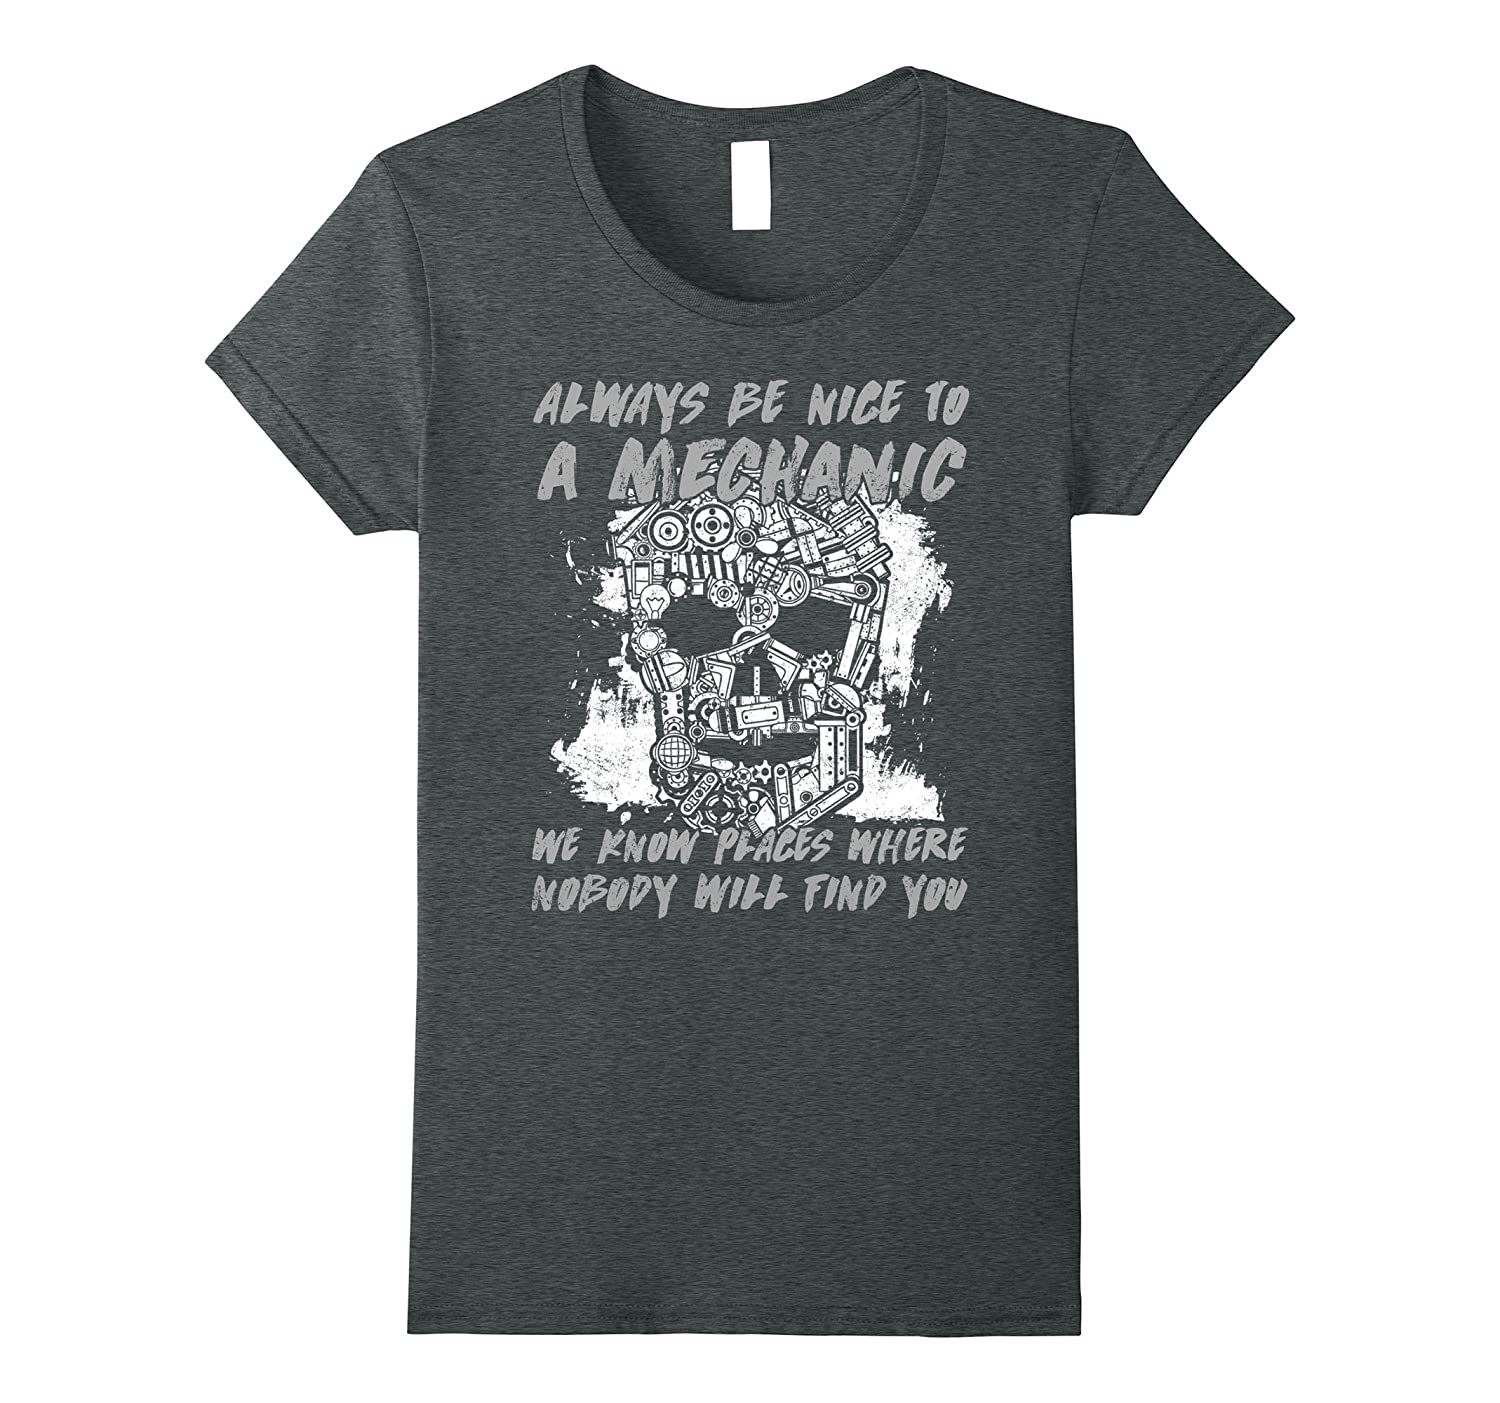 A Mechanic Knows Places Where Nobody Will Find You T-shirt